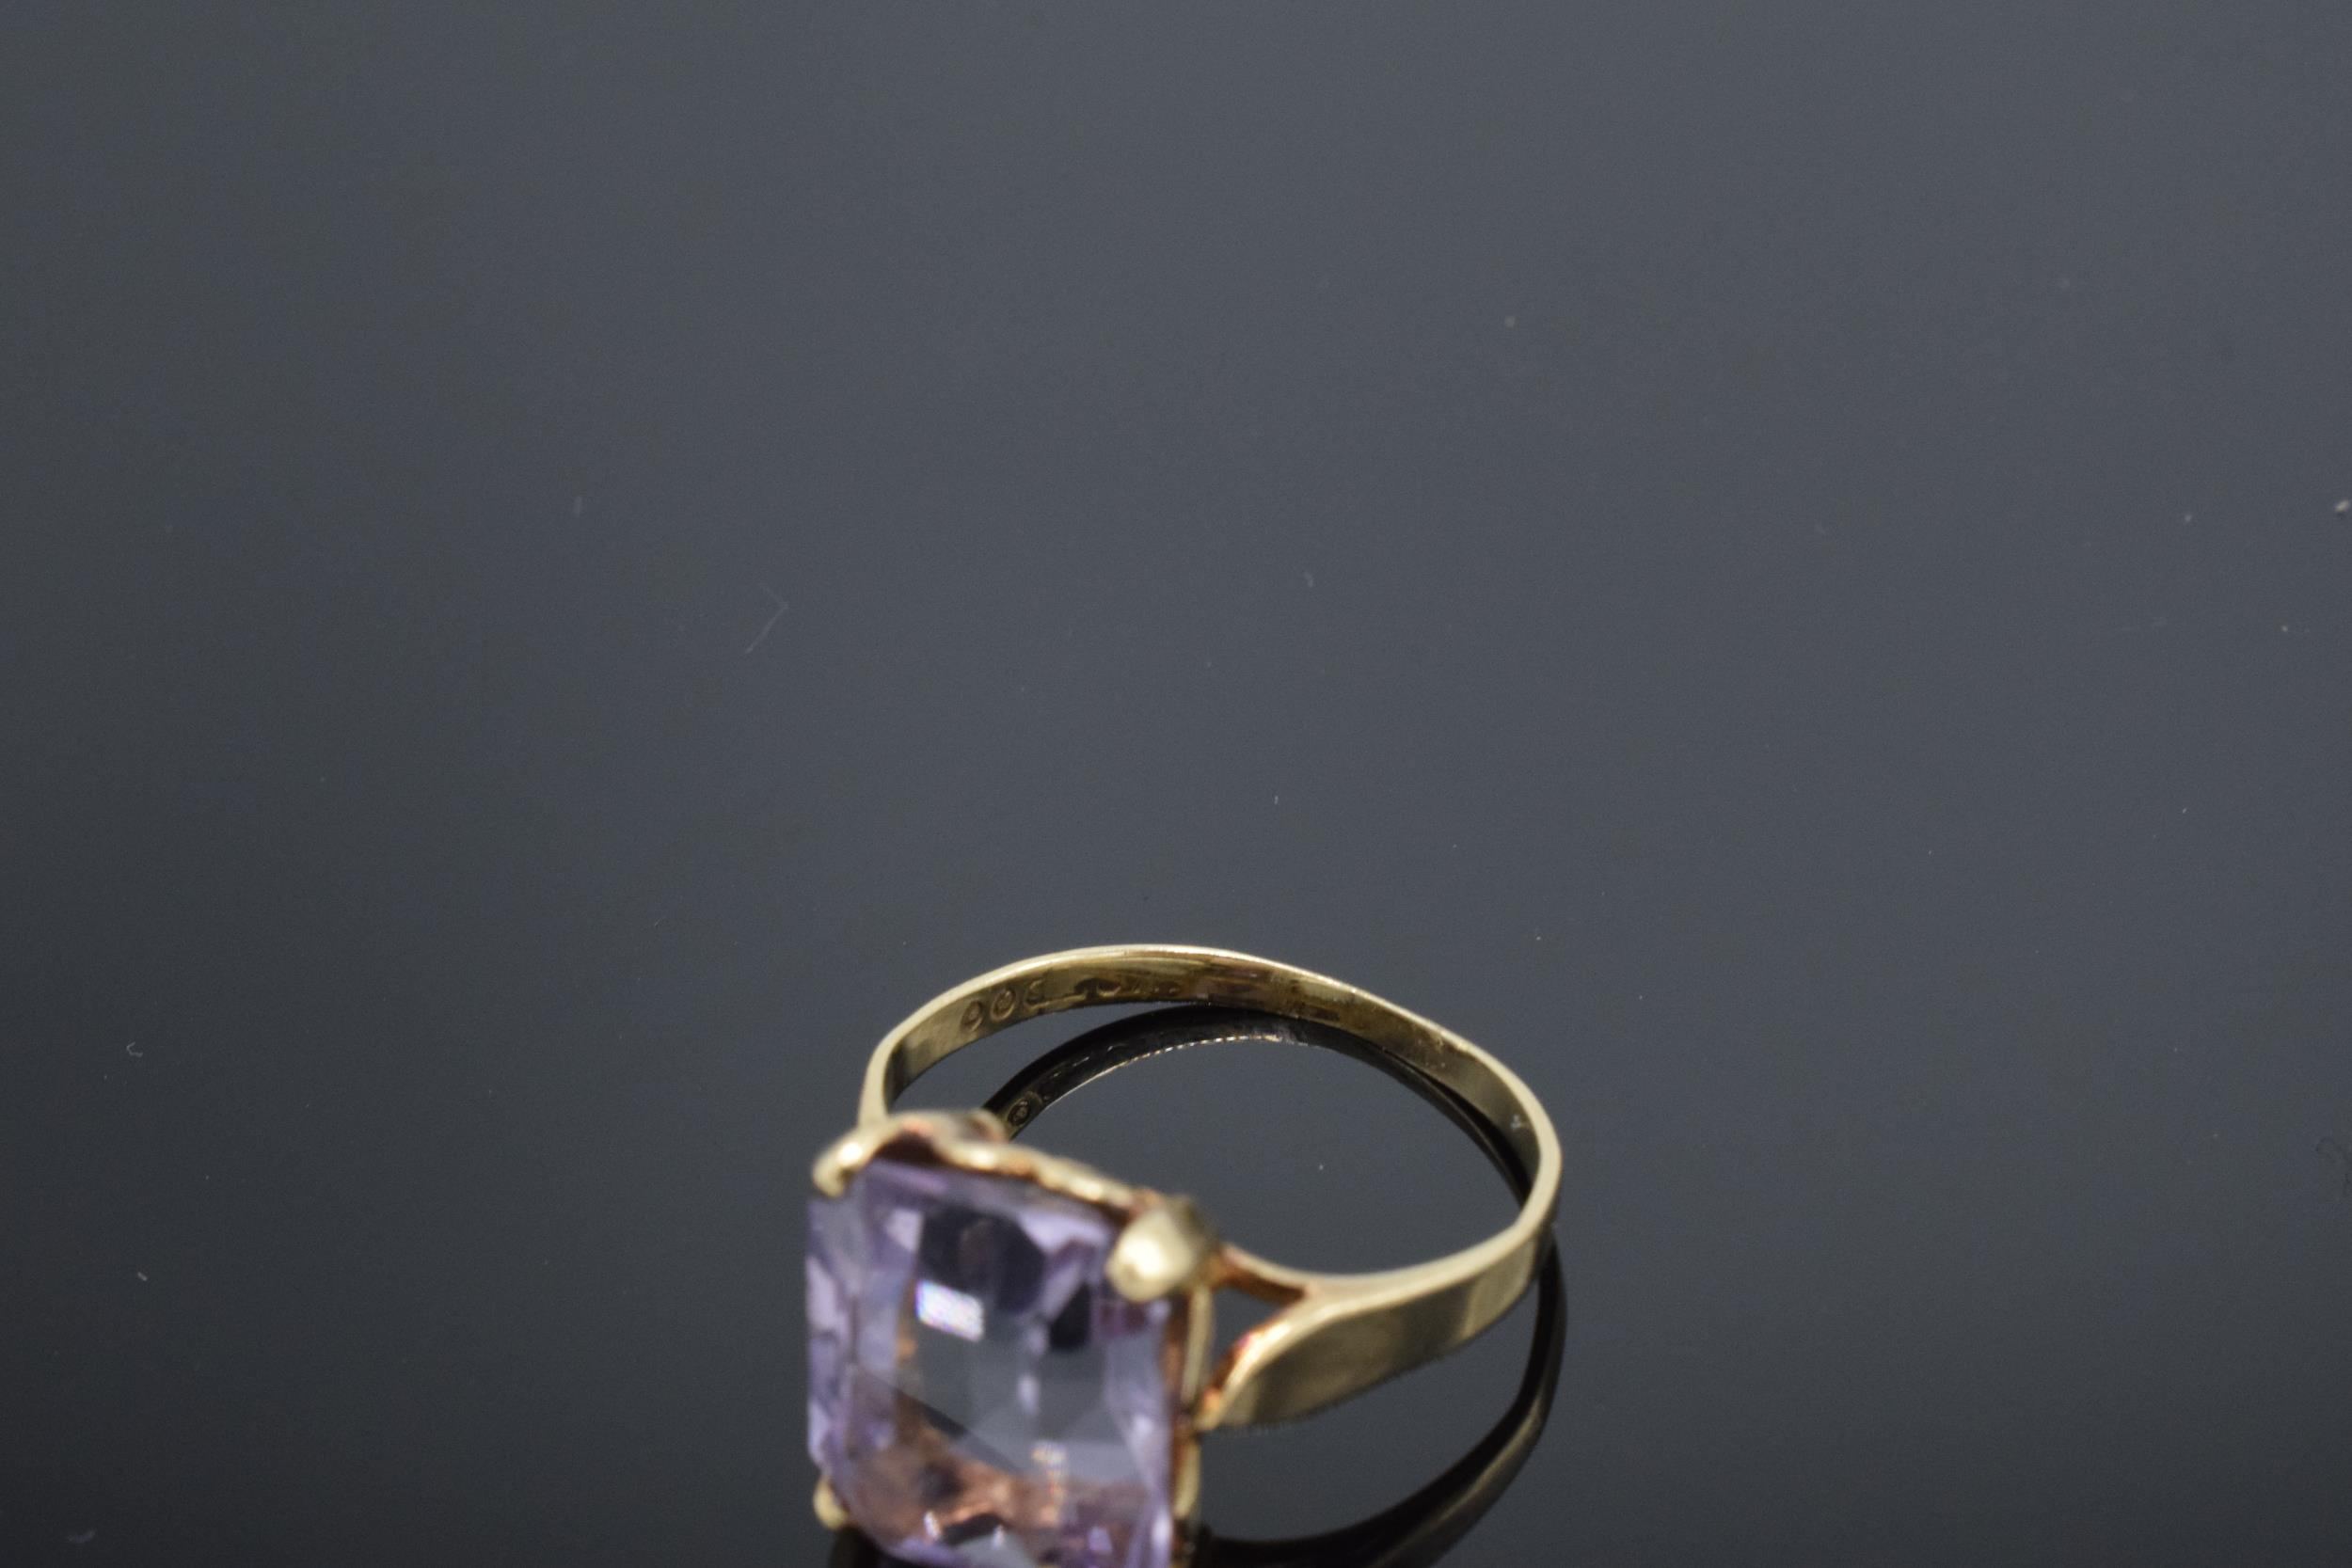 9ct gold ladies ring set with a large amethyst stone. 3.1 grams. UK size O/P. Hallmarks slightly - Image 4 of 4